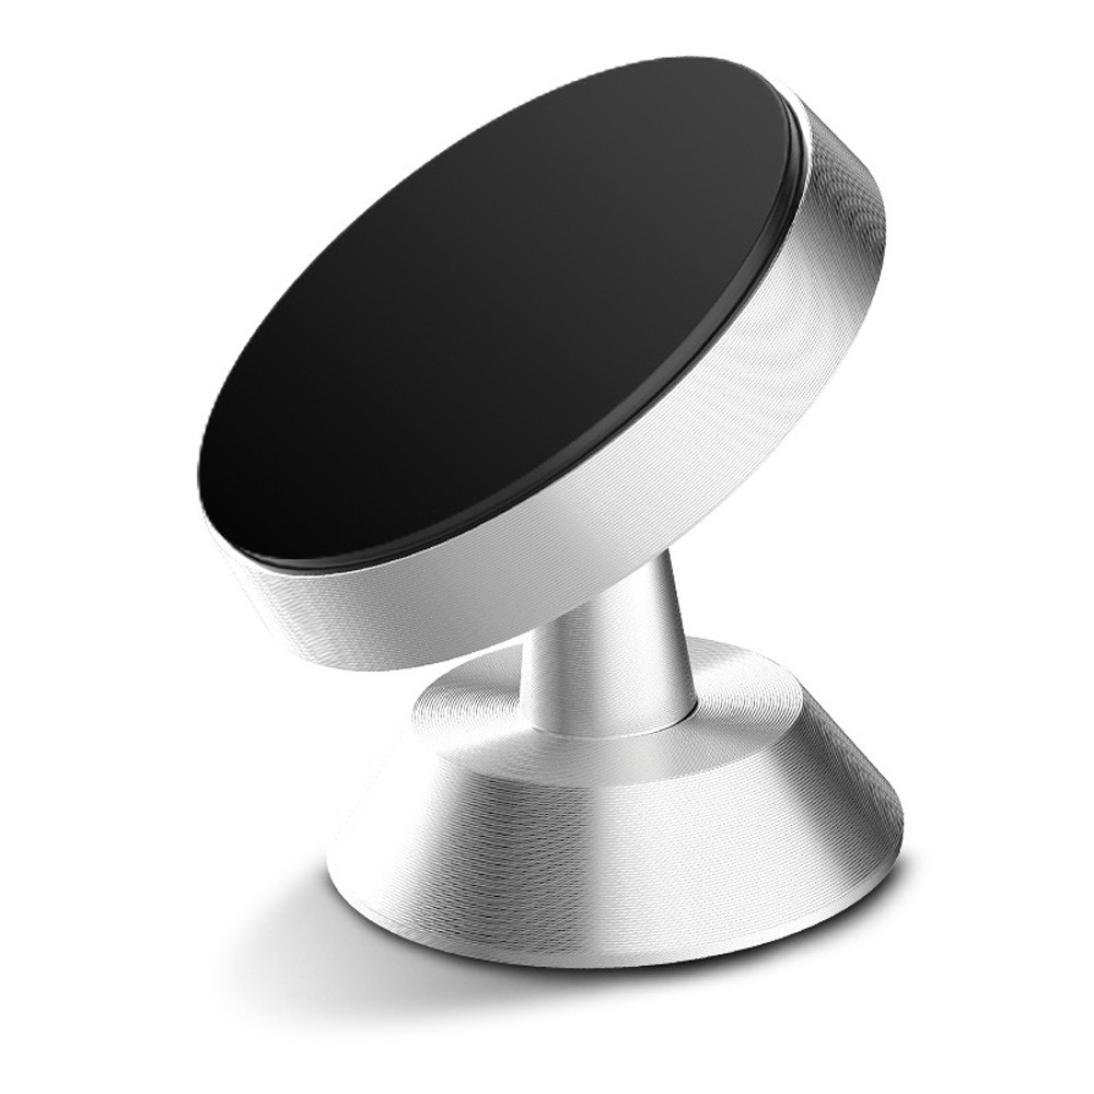 Iusun Magnetic Car Phone Holder, 360 Degree Rotating Holder Car Magnetic Mount Stand Smartphone Mounting Base For iPhone Samsung Huawei Xiaomi Phone (Silver)